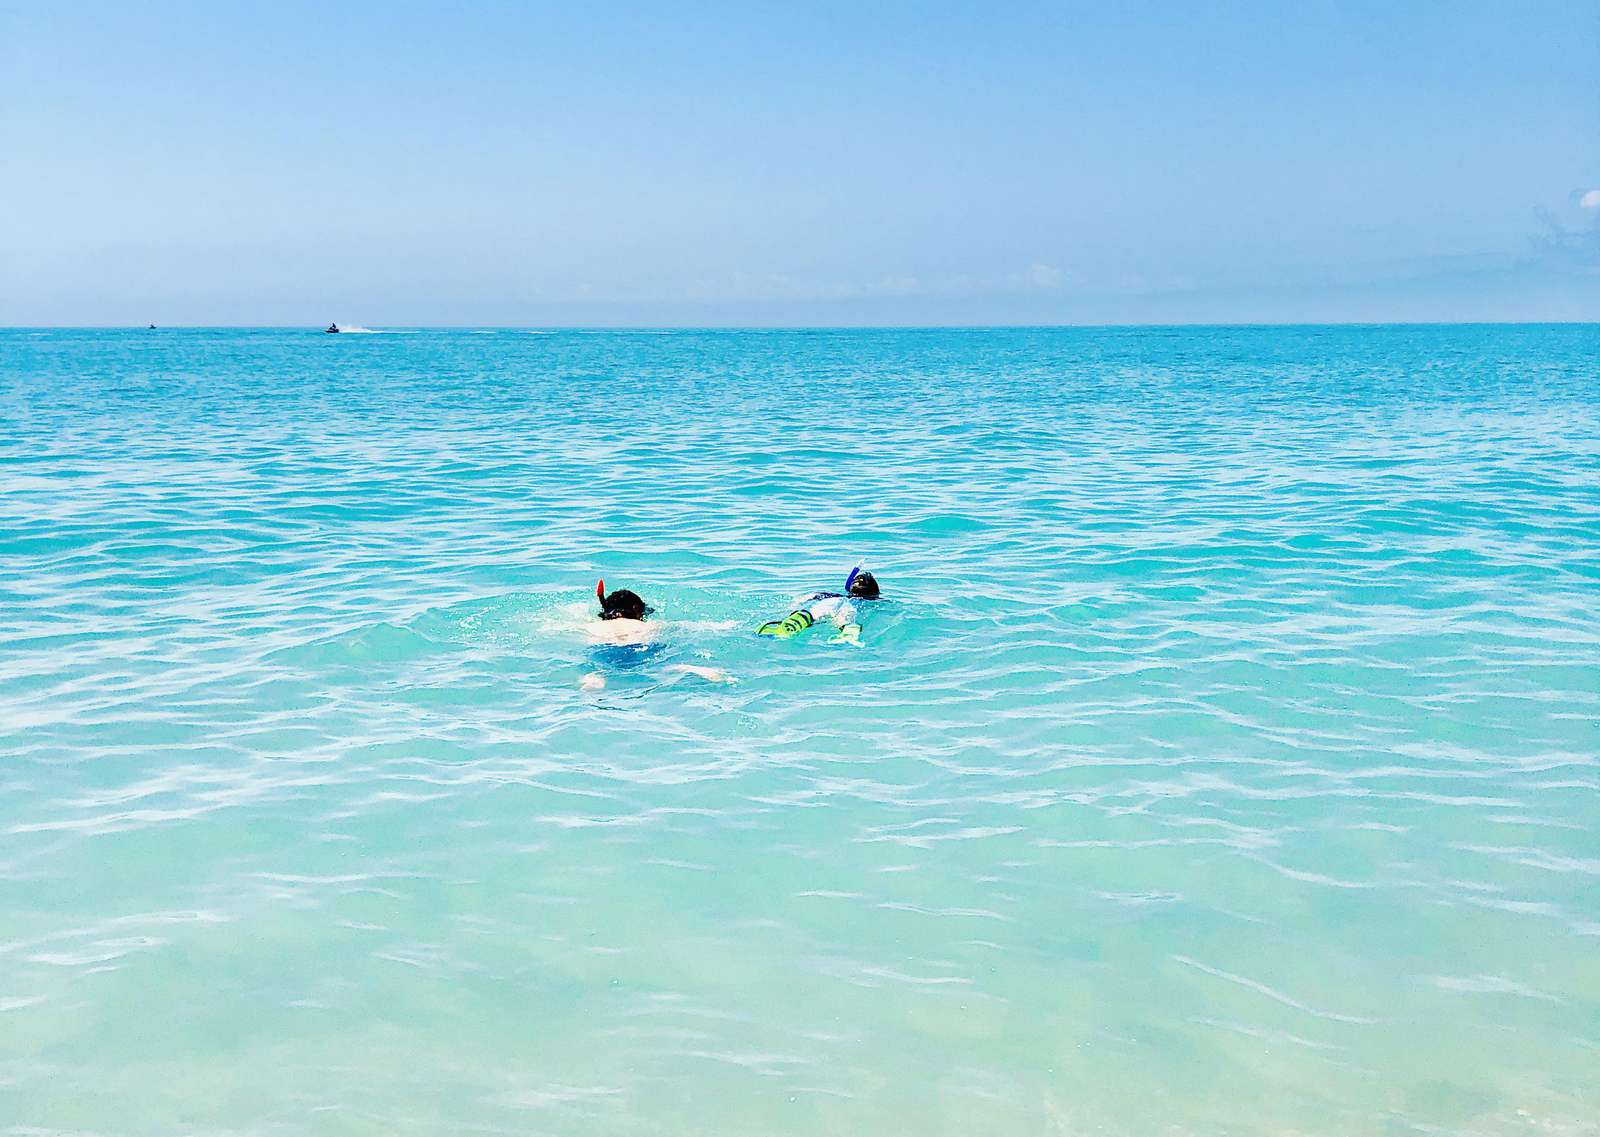 Snorkeling in the Gulf